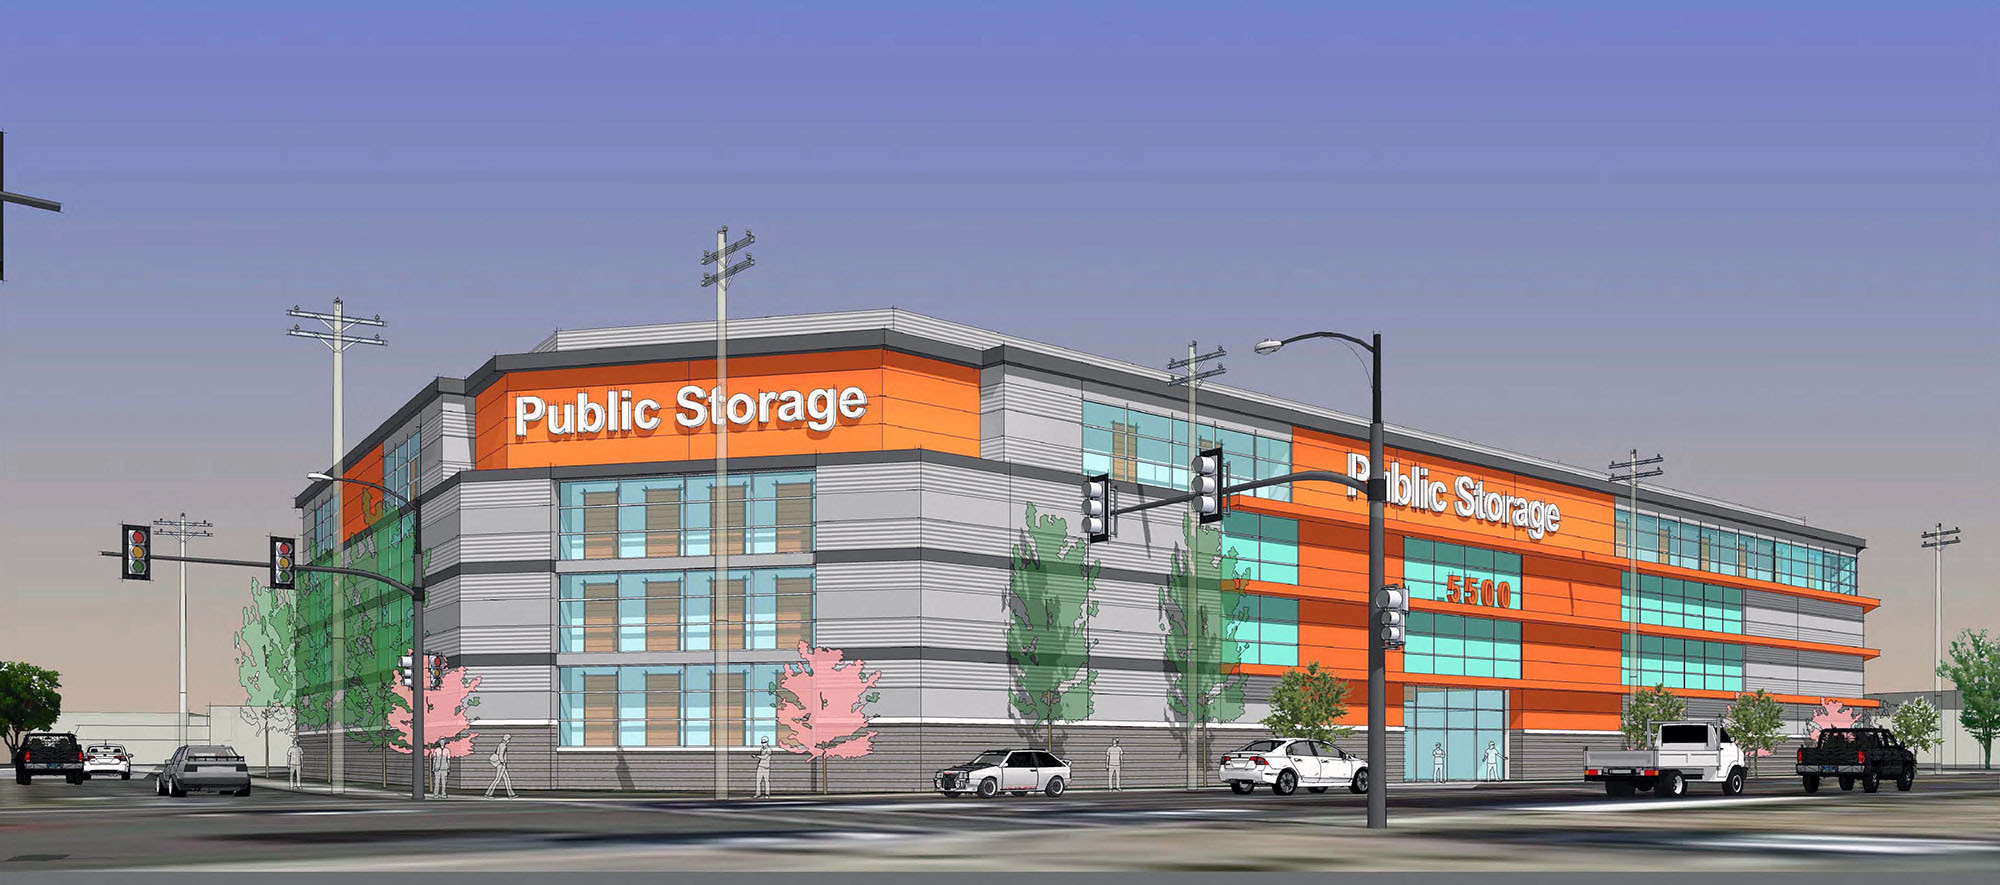 New public storage facility in glendale approved la times for The glendale